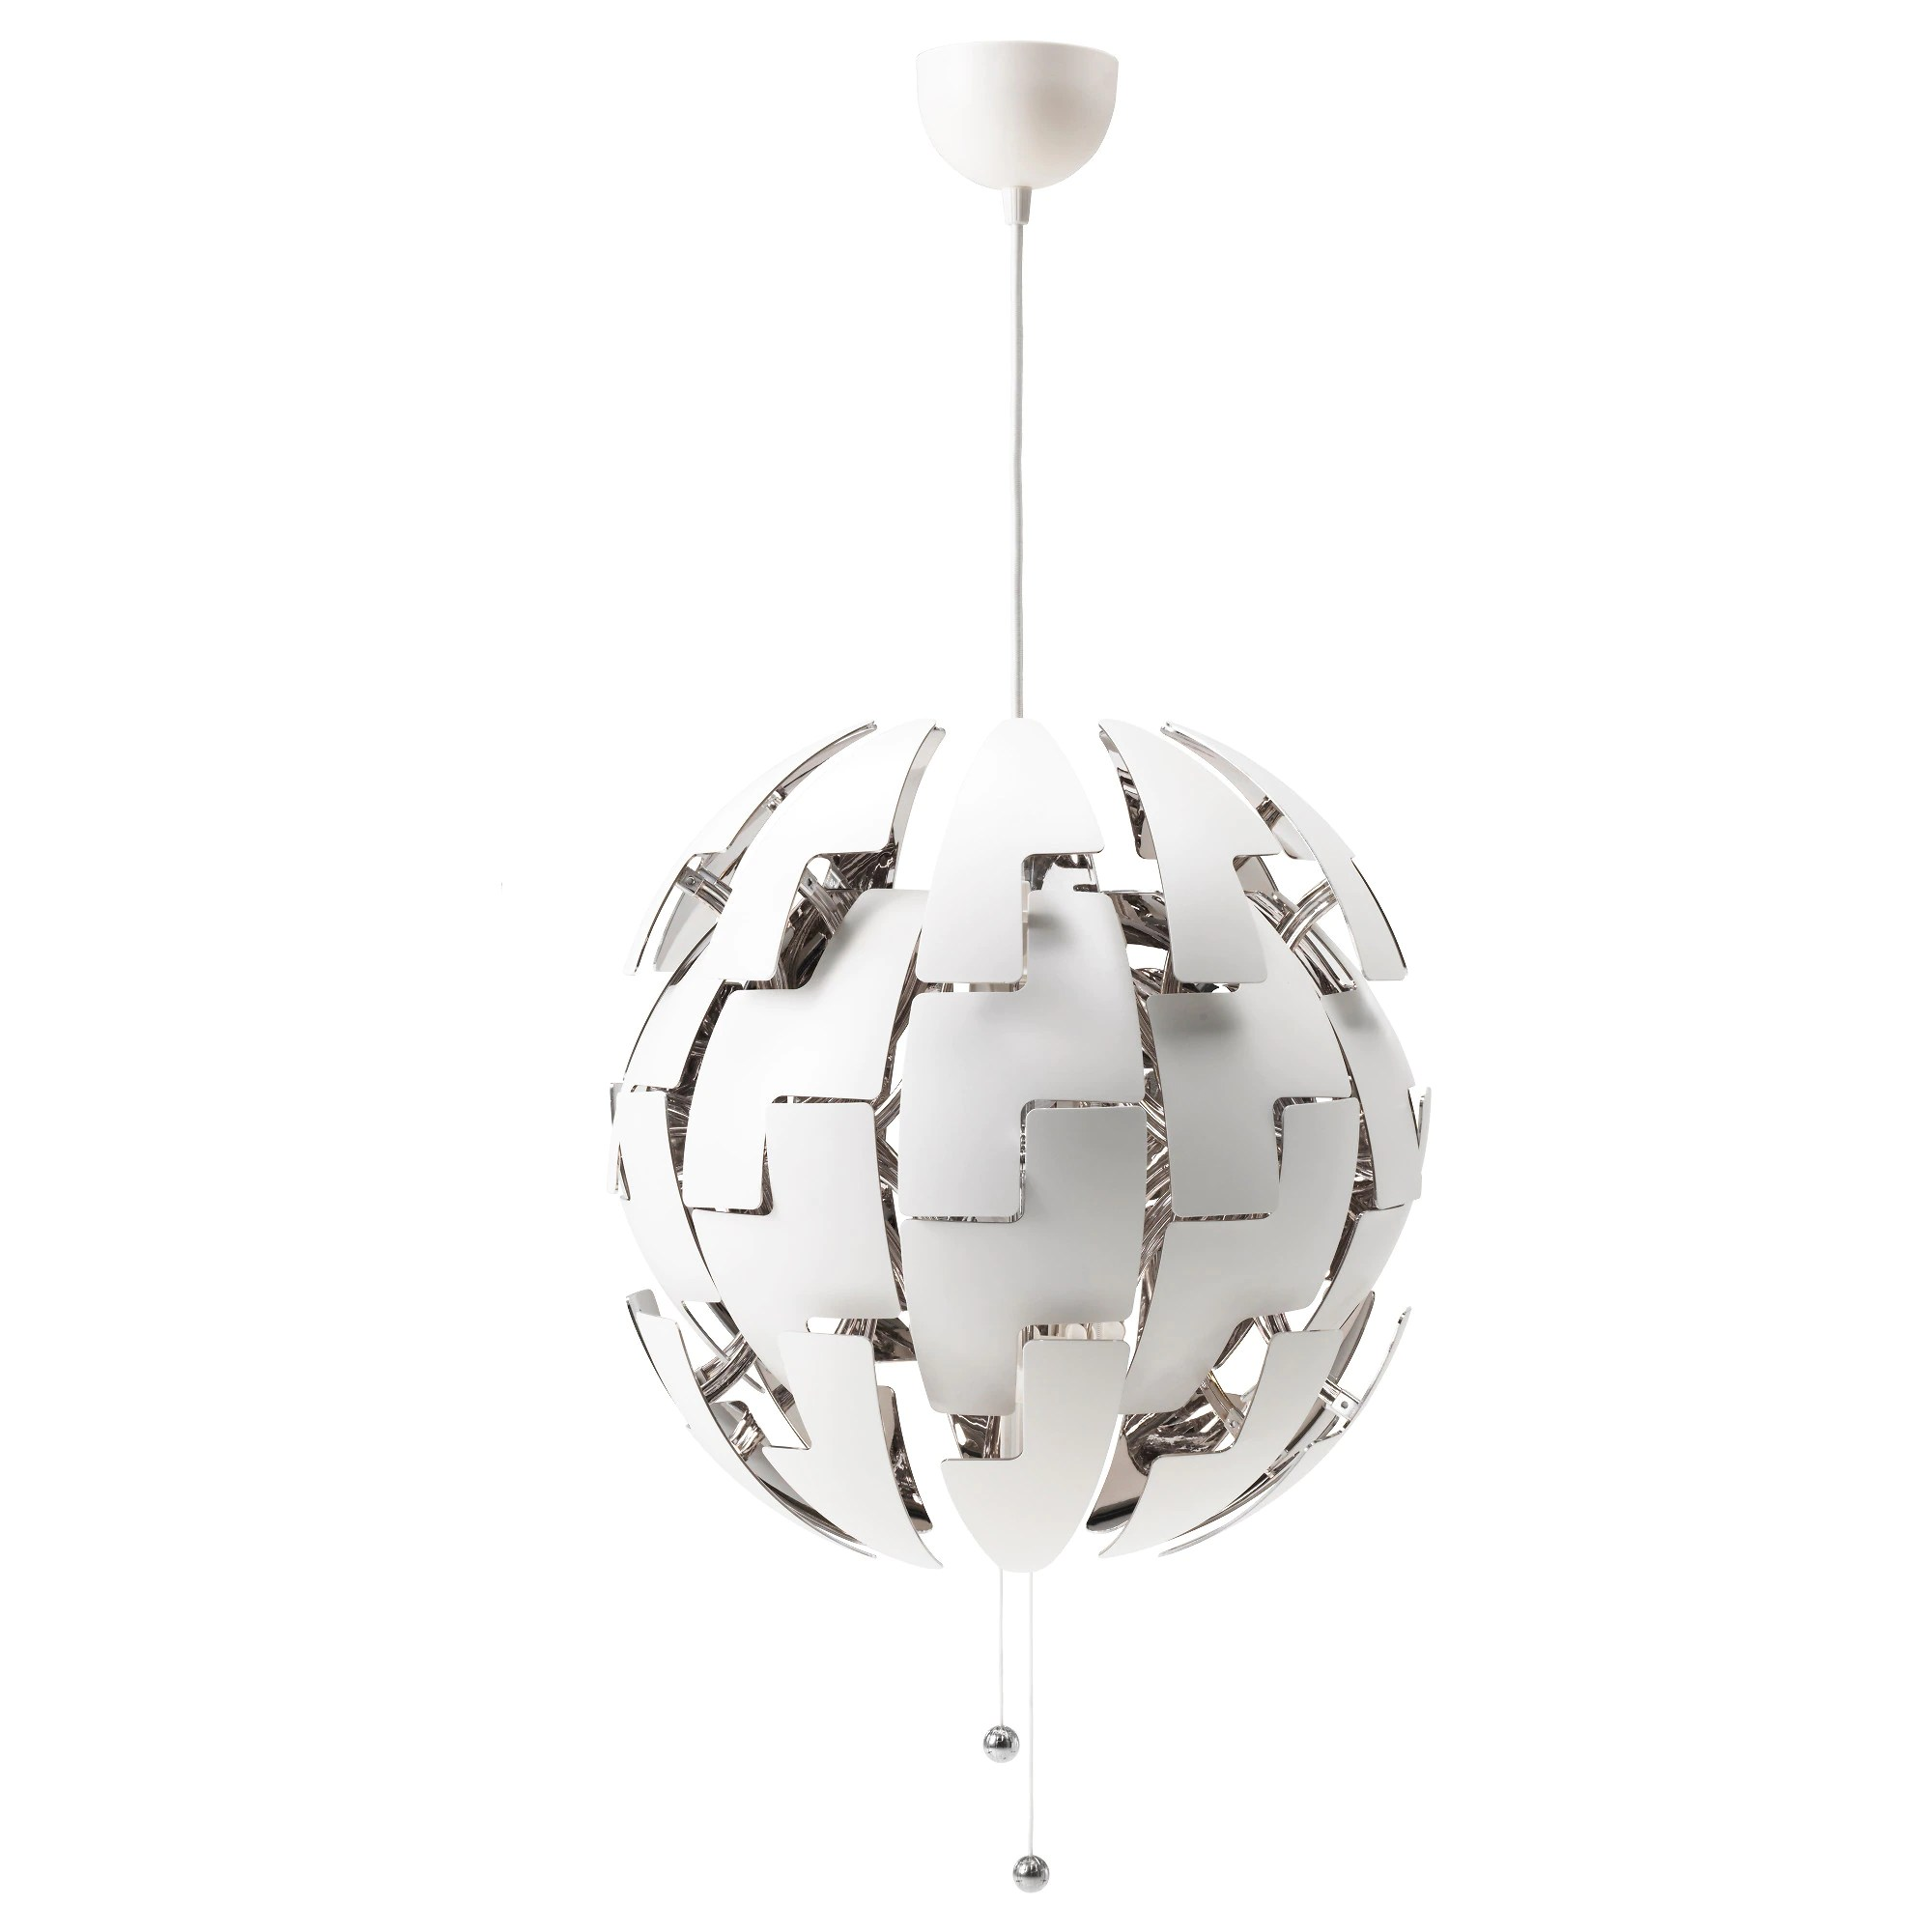 Suspension Ikea Cuivre Suspension Ikea Ps 2014 Blanc Couleur Argent